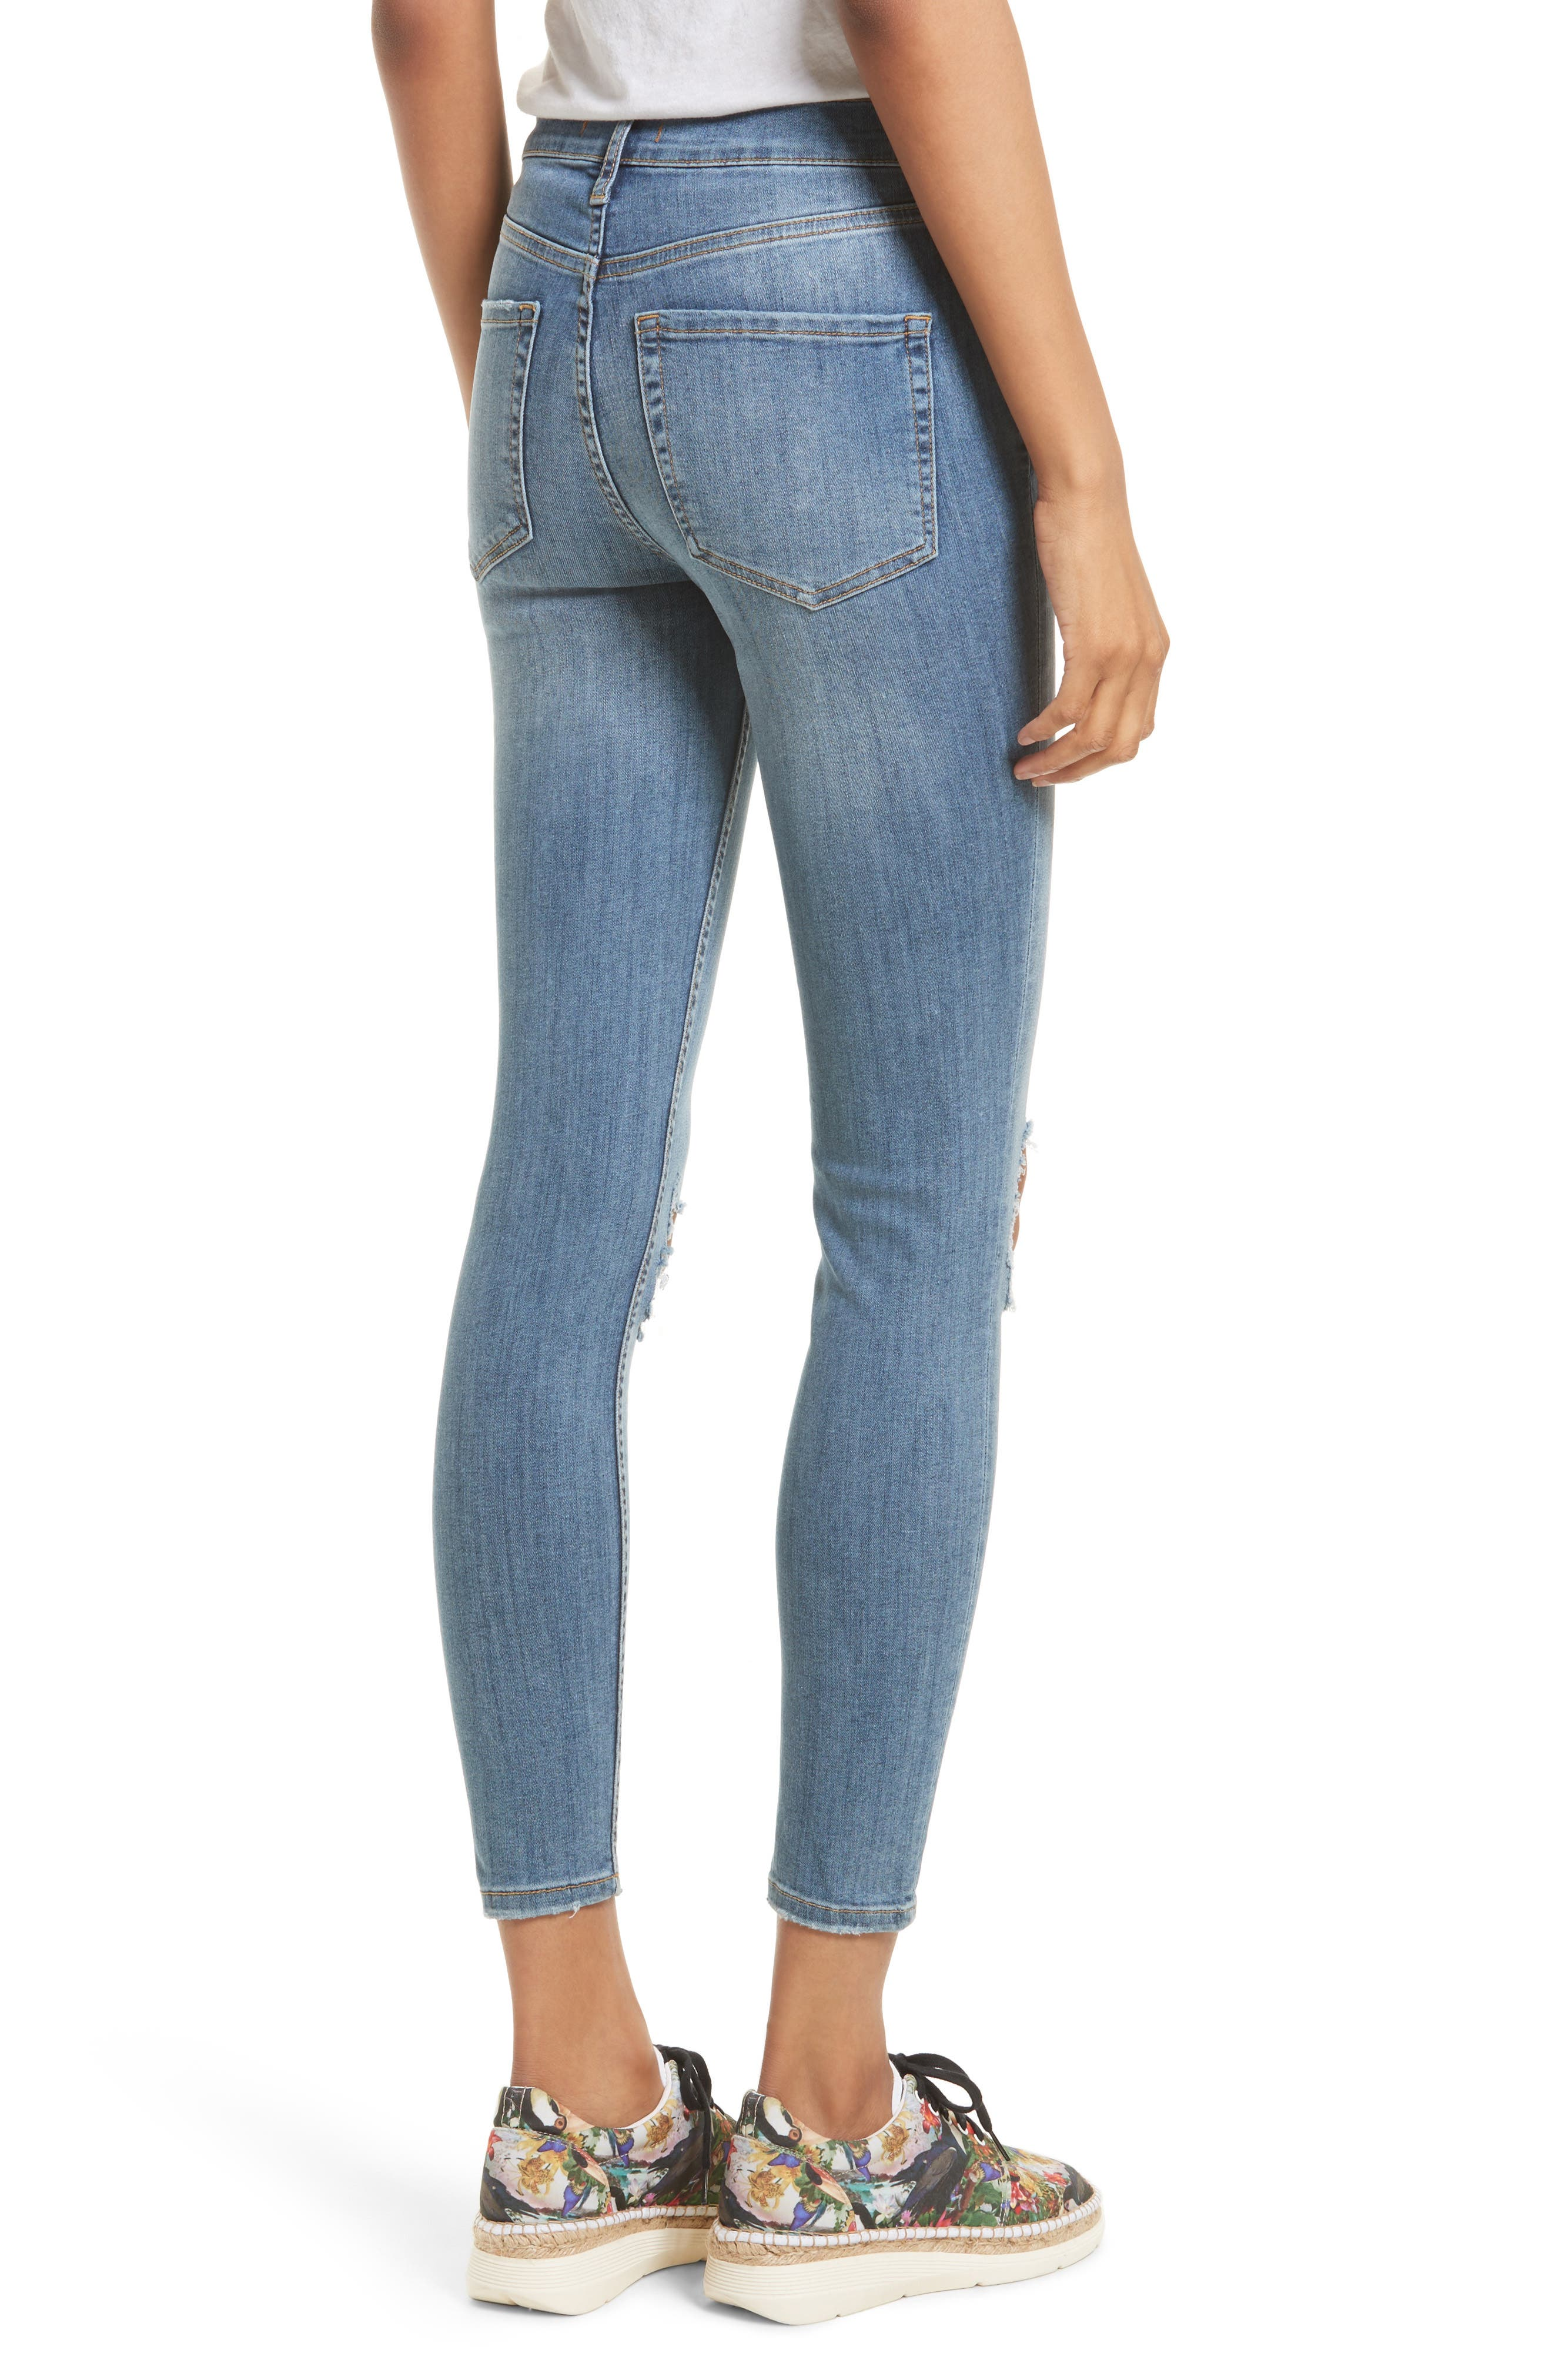 Alternate Image 2  - Free People High Rise Busted Knee Skinny Jeans (Light Denim)